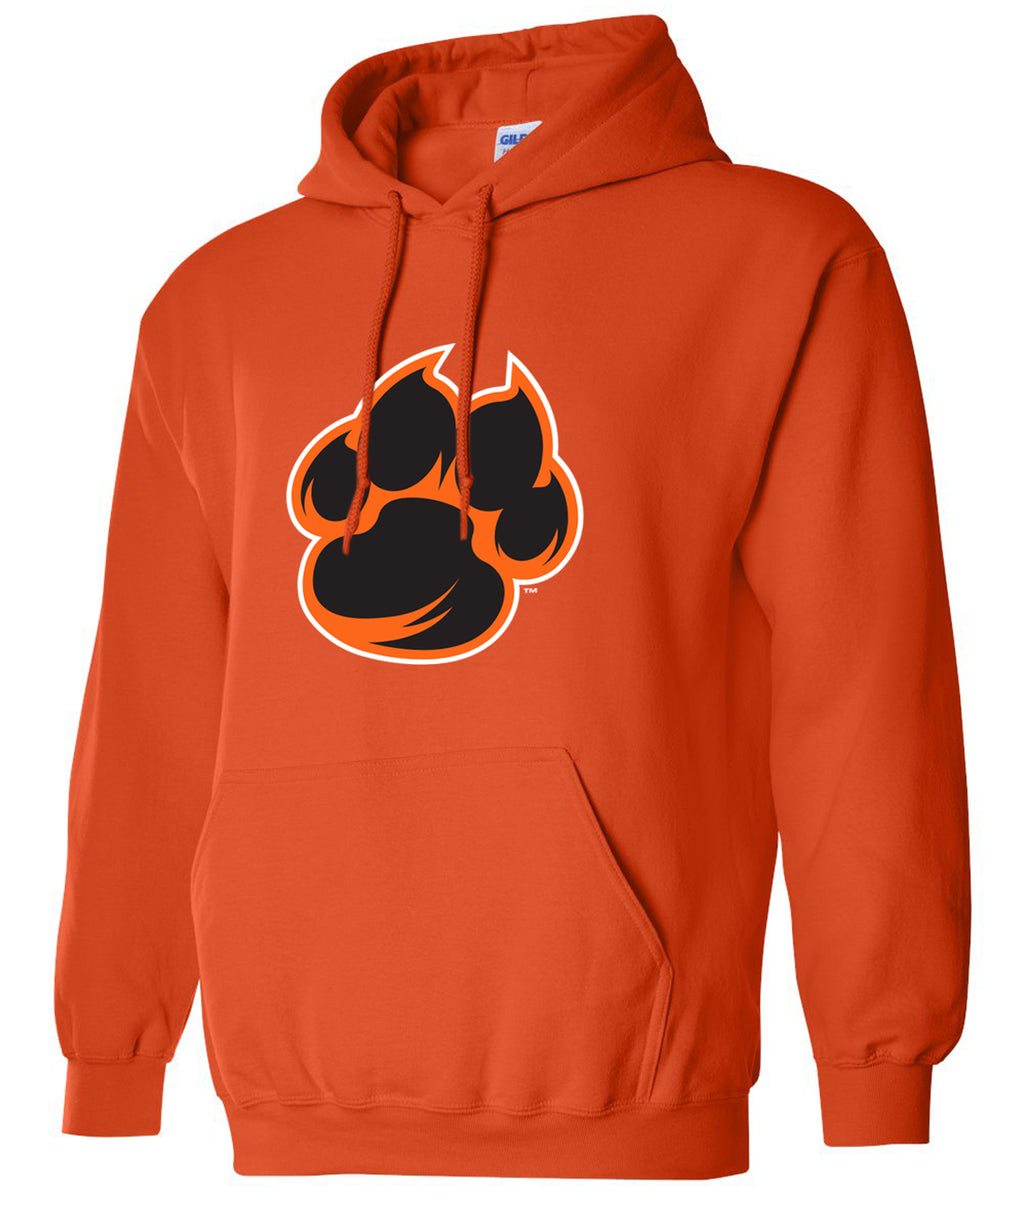 School Pride Sweatshirt